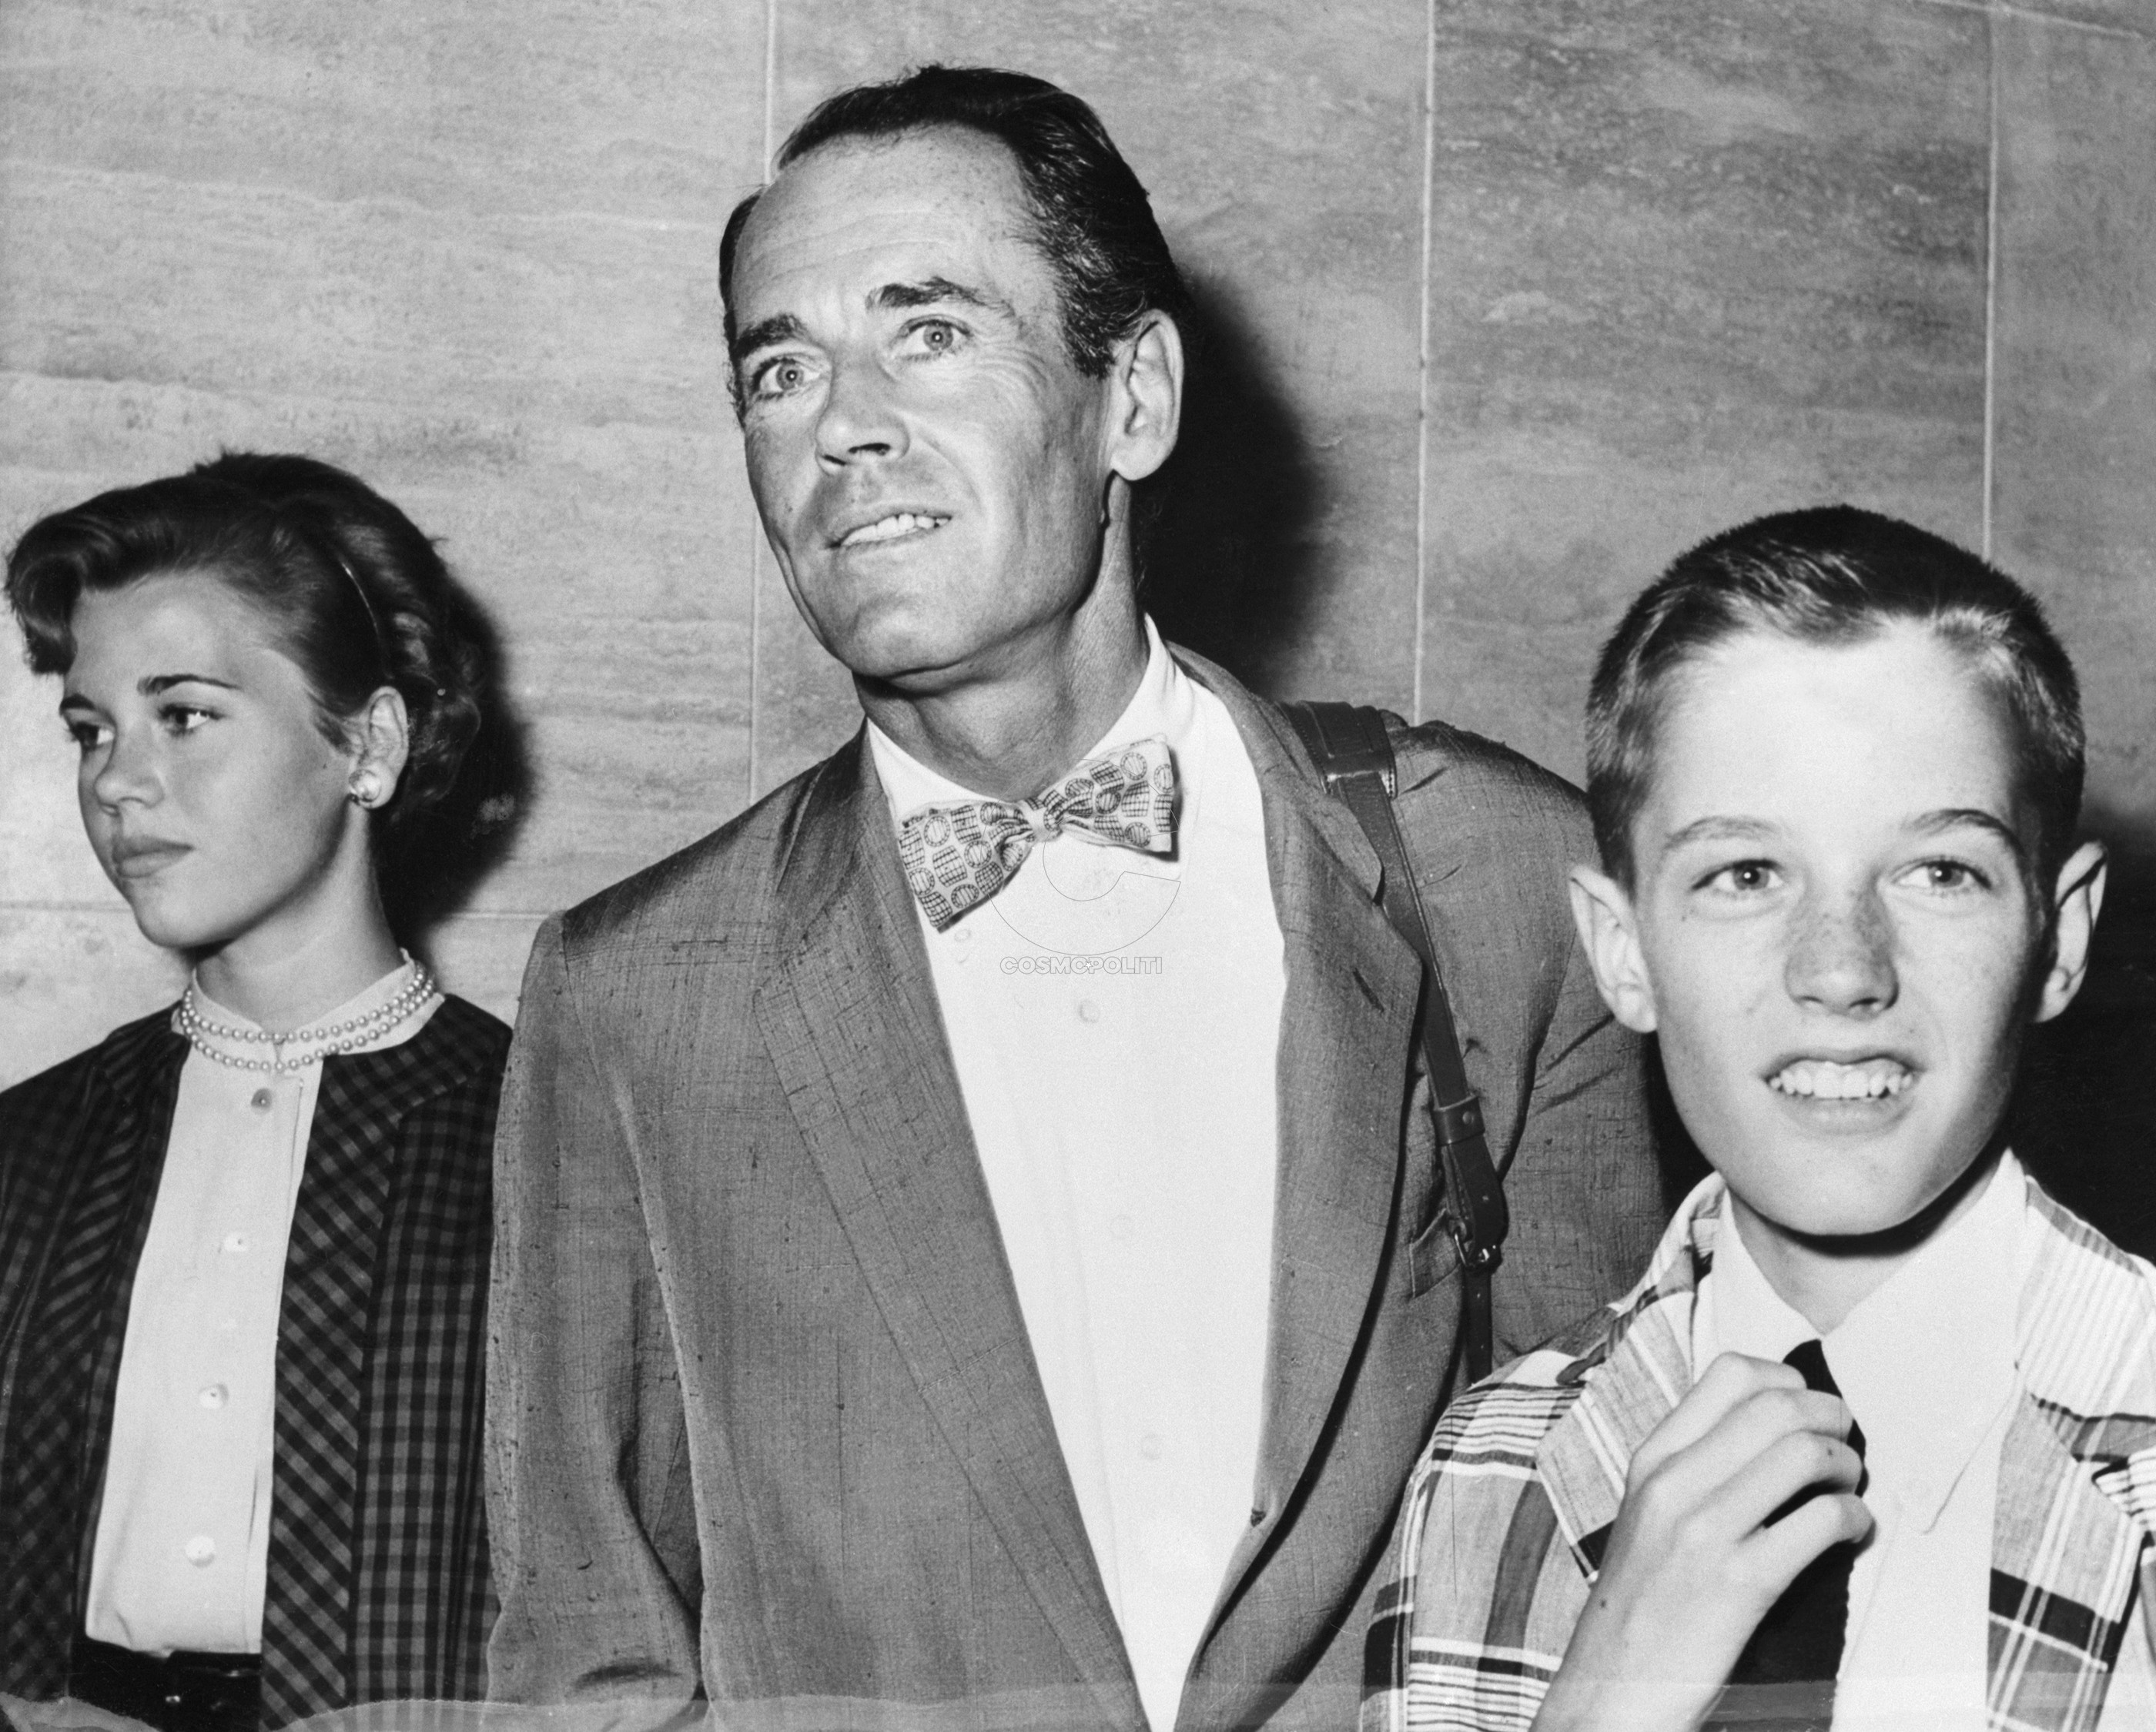 "(Original Caption) 7/13/1955-Rome, Italy-Actor Henry Fonda arrives in Rome with his daughter Jane and son Peter to begin a movie assignment. He'll co-star with Audrey Hepburn in the multi-million dollar production of ""War and Peace."" Fonda wanted the kids with him during the four months he'll be in the Eternal City."